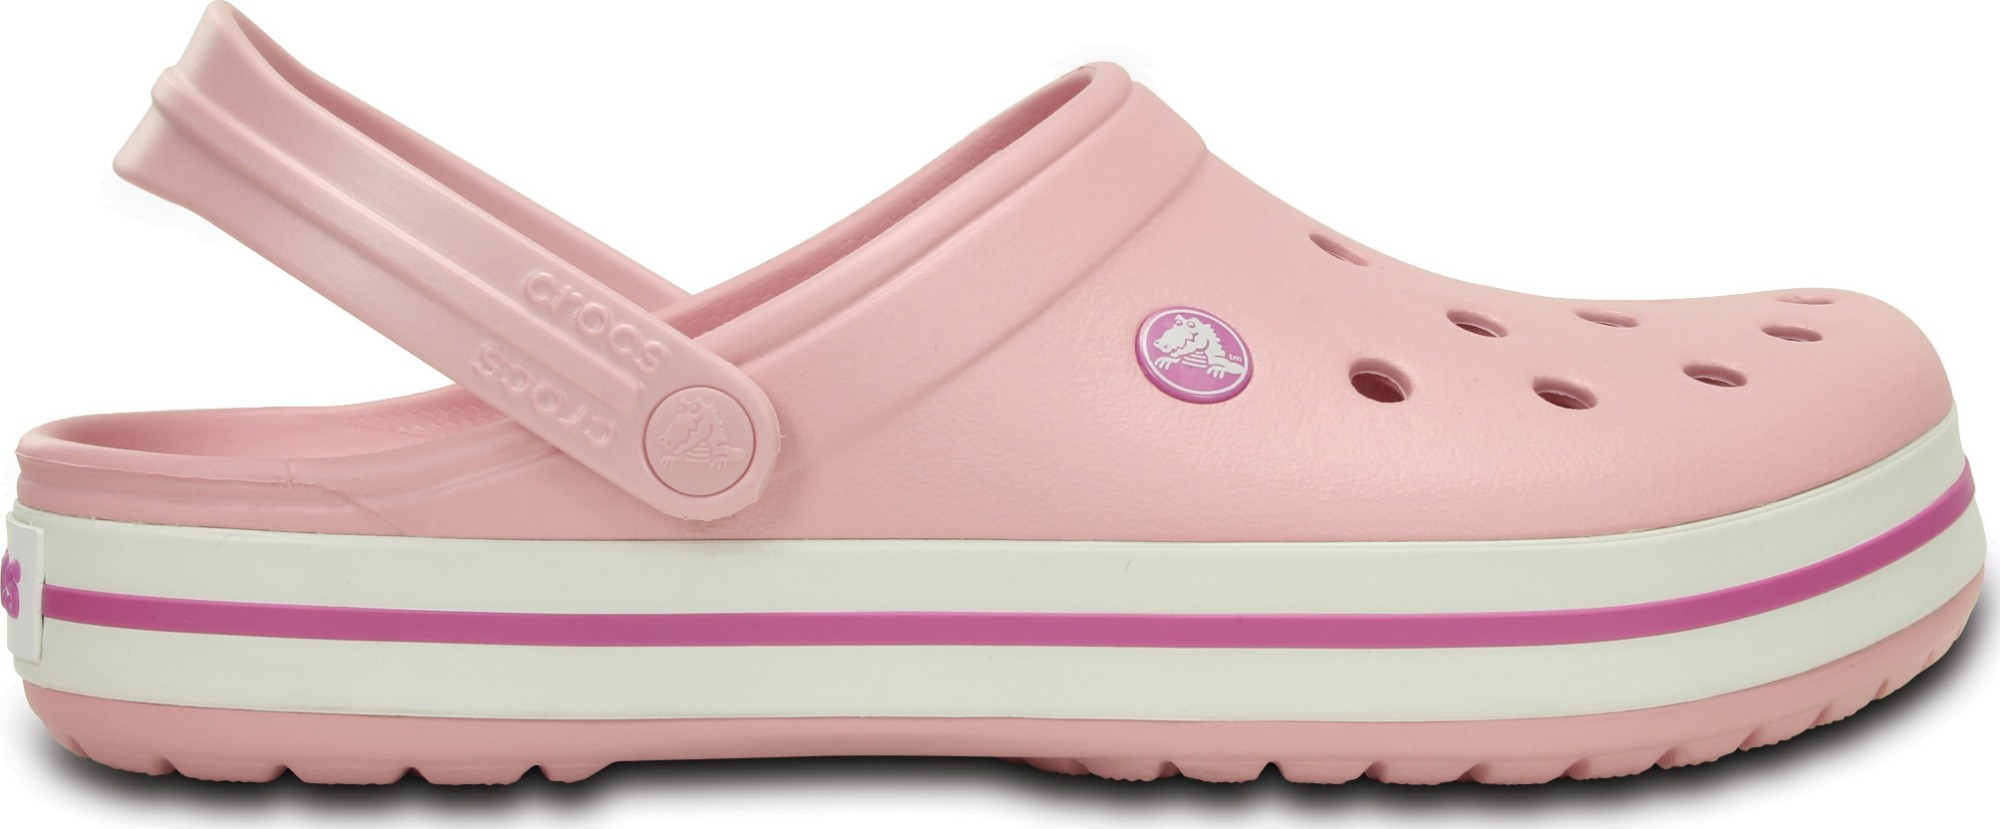 Crocs™ Crocband™ Pearl Pink/Wild Orchid 36,5